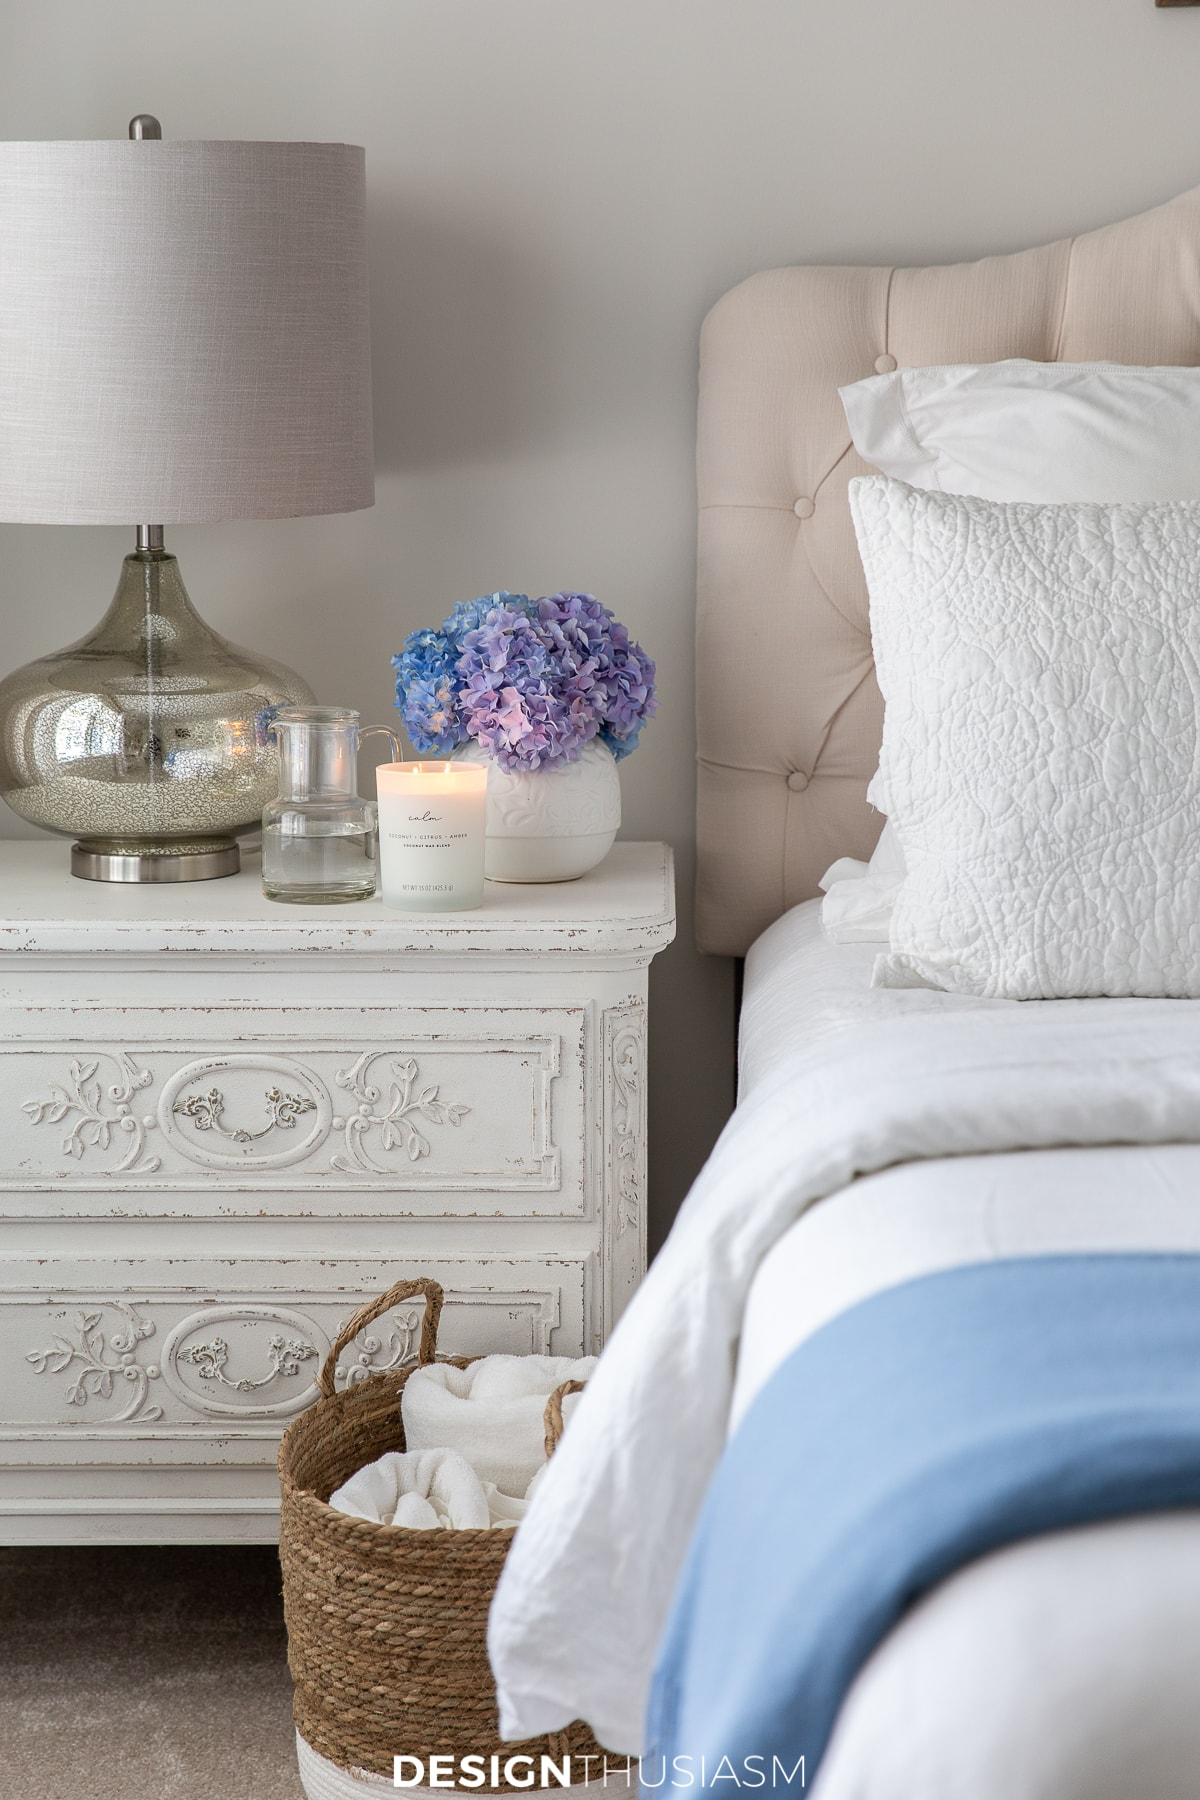 Beyond the Guest Room: How to Prepare Your Home for Overnight Guests